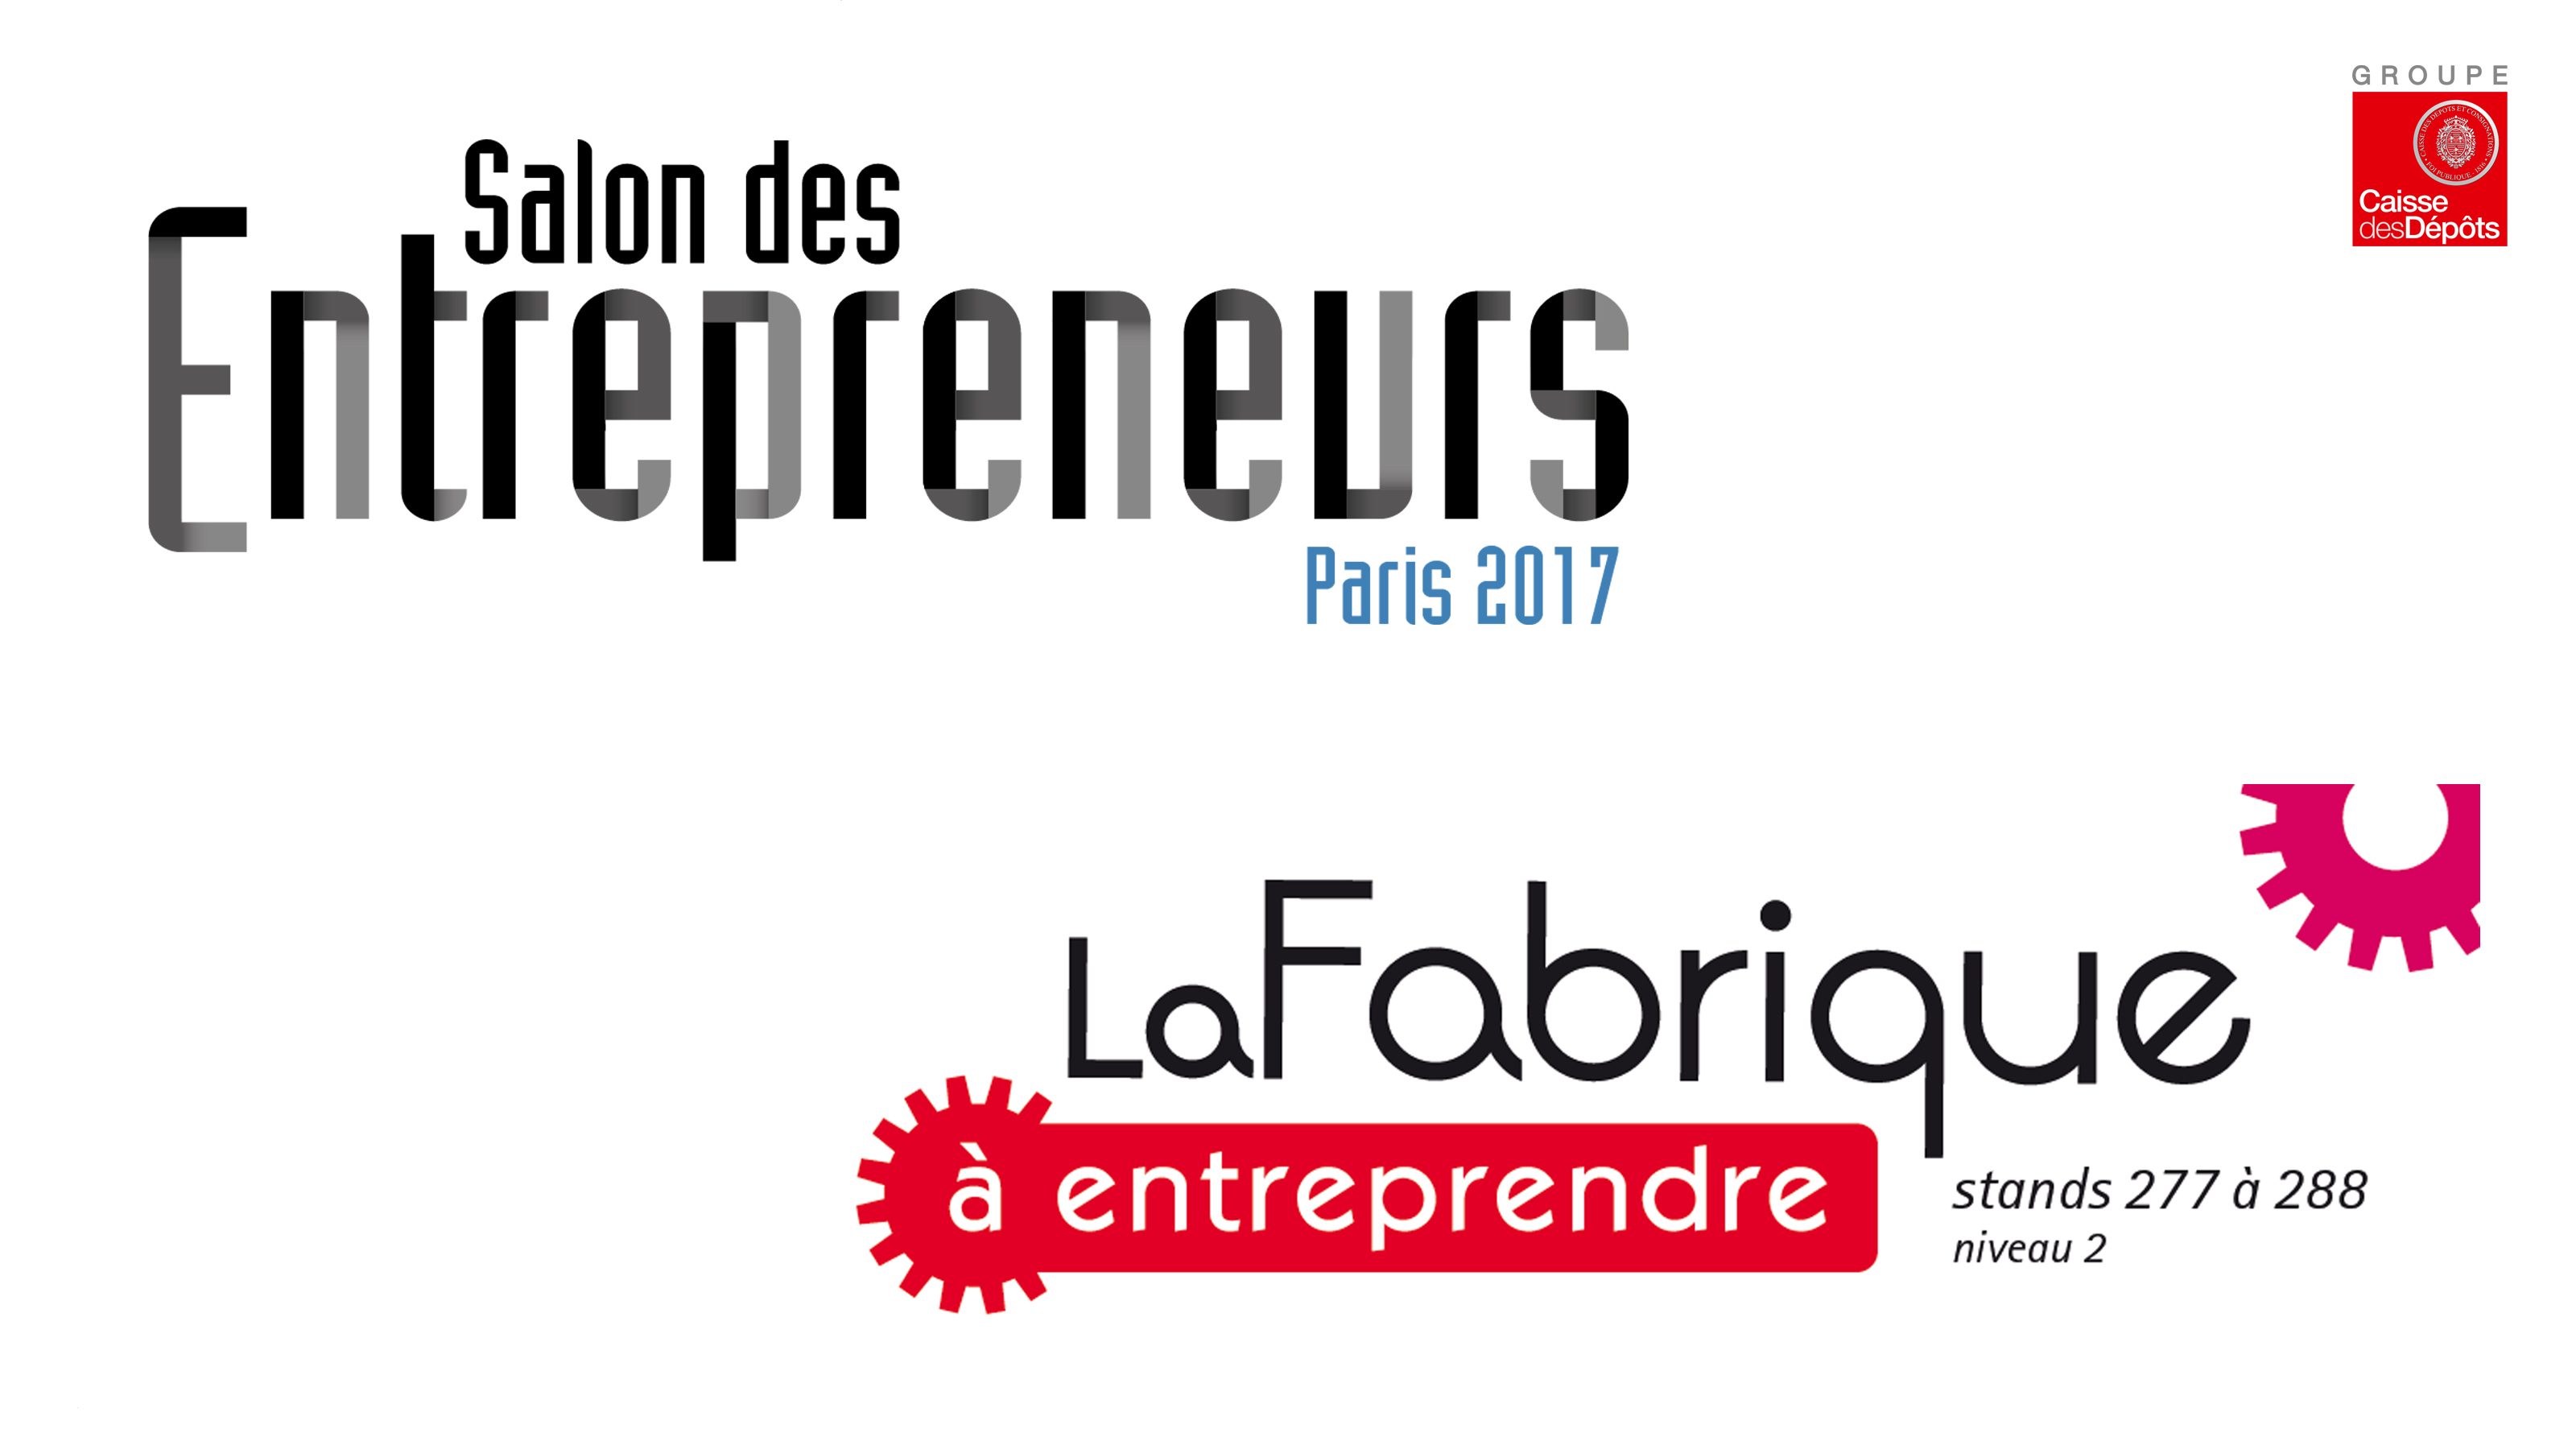 Le r seau satt pr sent au salon des entrepreneurs sur la for Salon des entrepreneurs paris